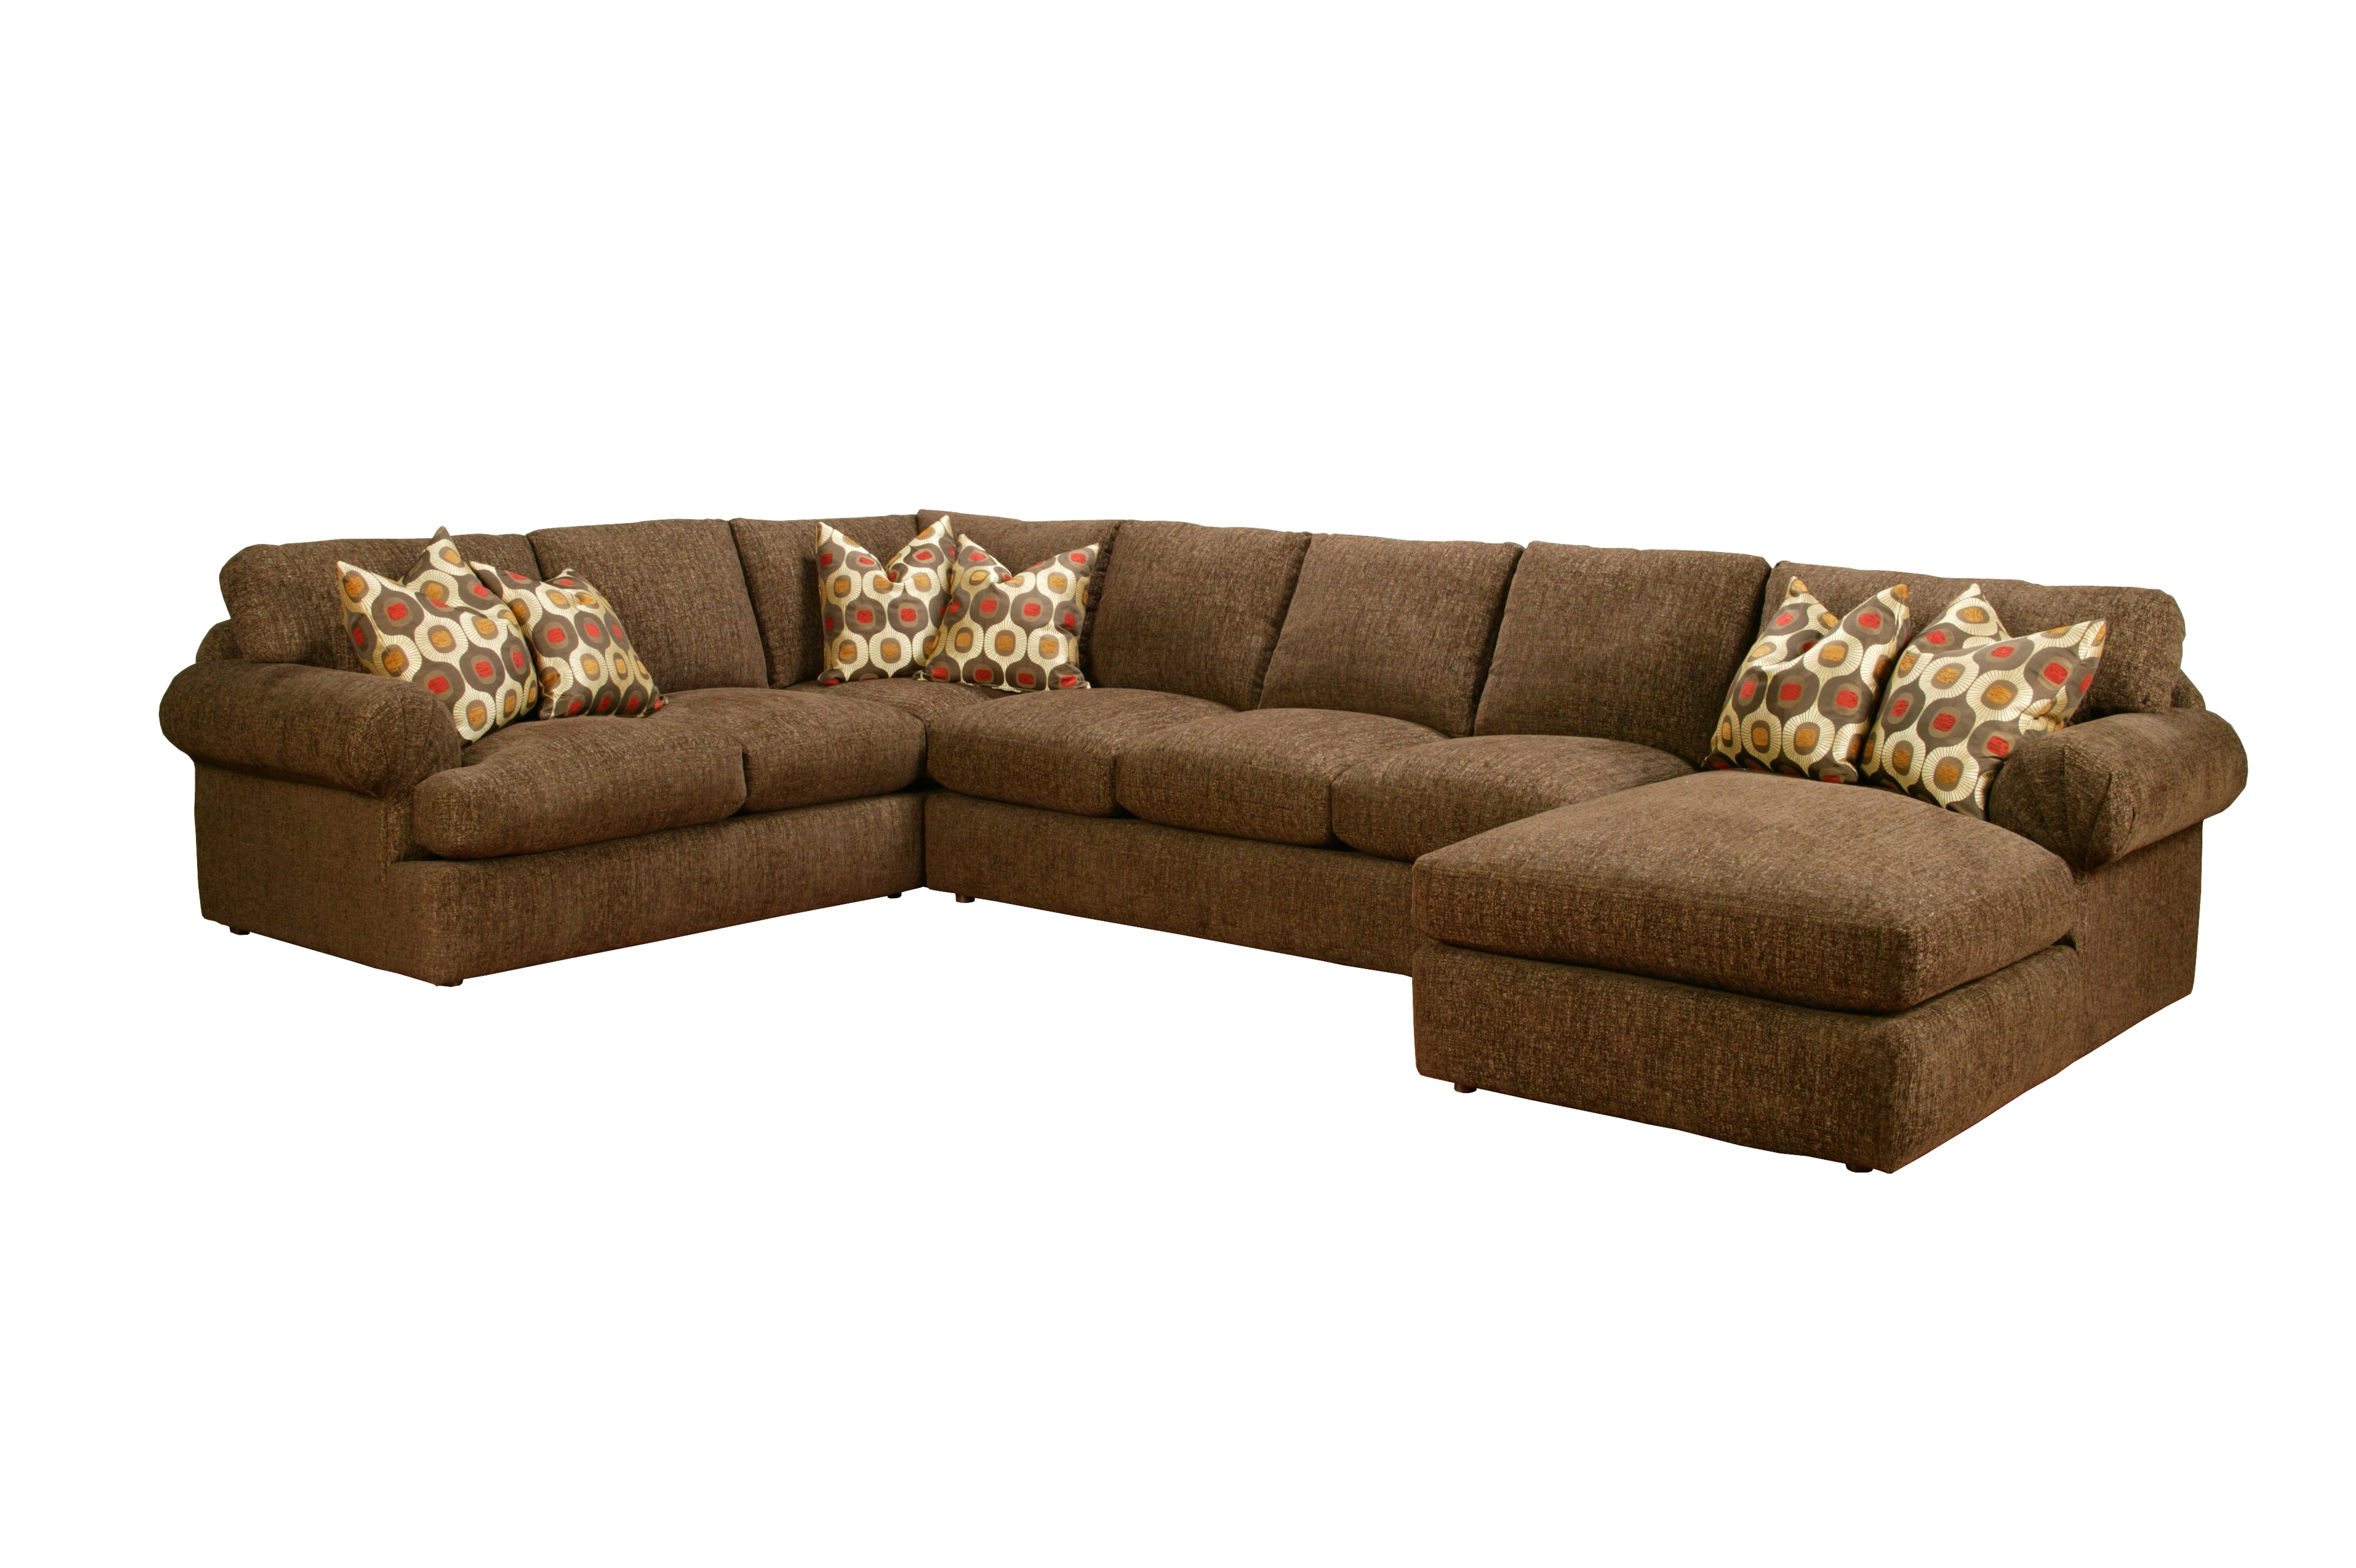 Popular Phoenix Arizona Sectional Sofas With Robert Michael Fifth Ave Sofa Sectionals Phoenix Arizona (View 9 of 20)